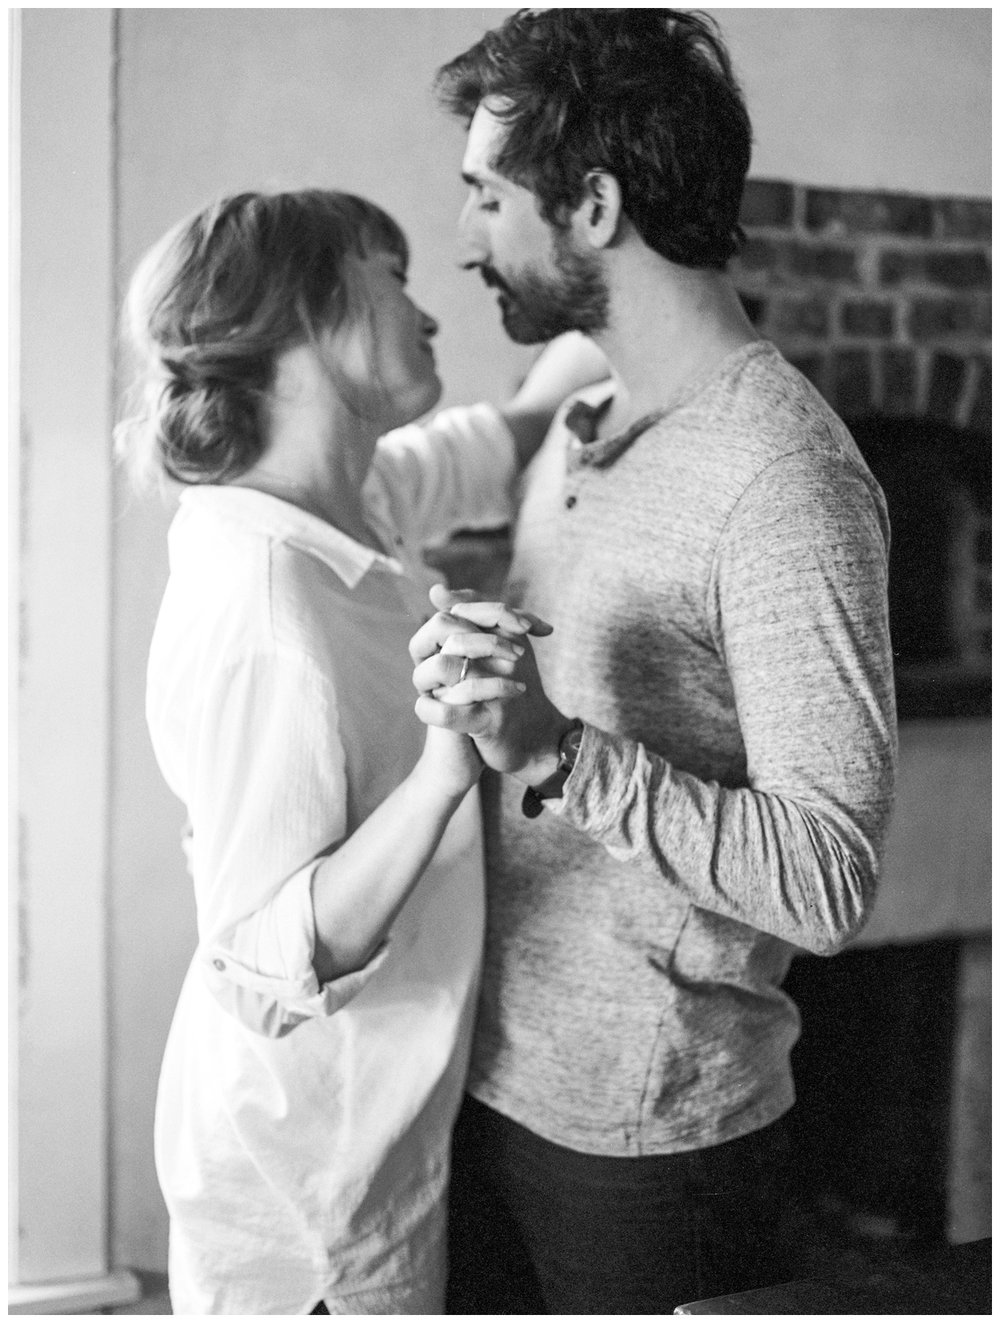 culinary anniversary session in the kitchen with a couple dancing together by fine art photographer Lissa Ryan Photography